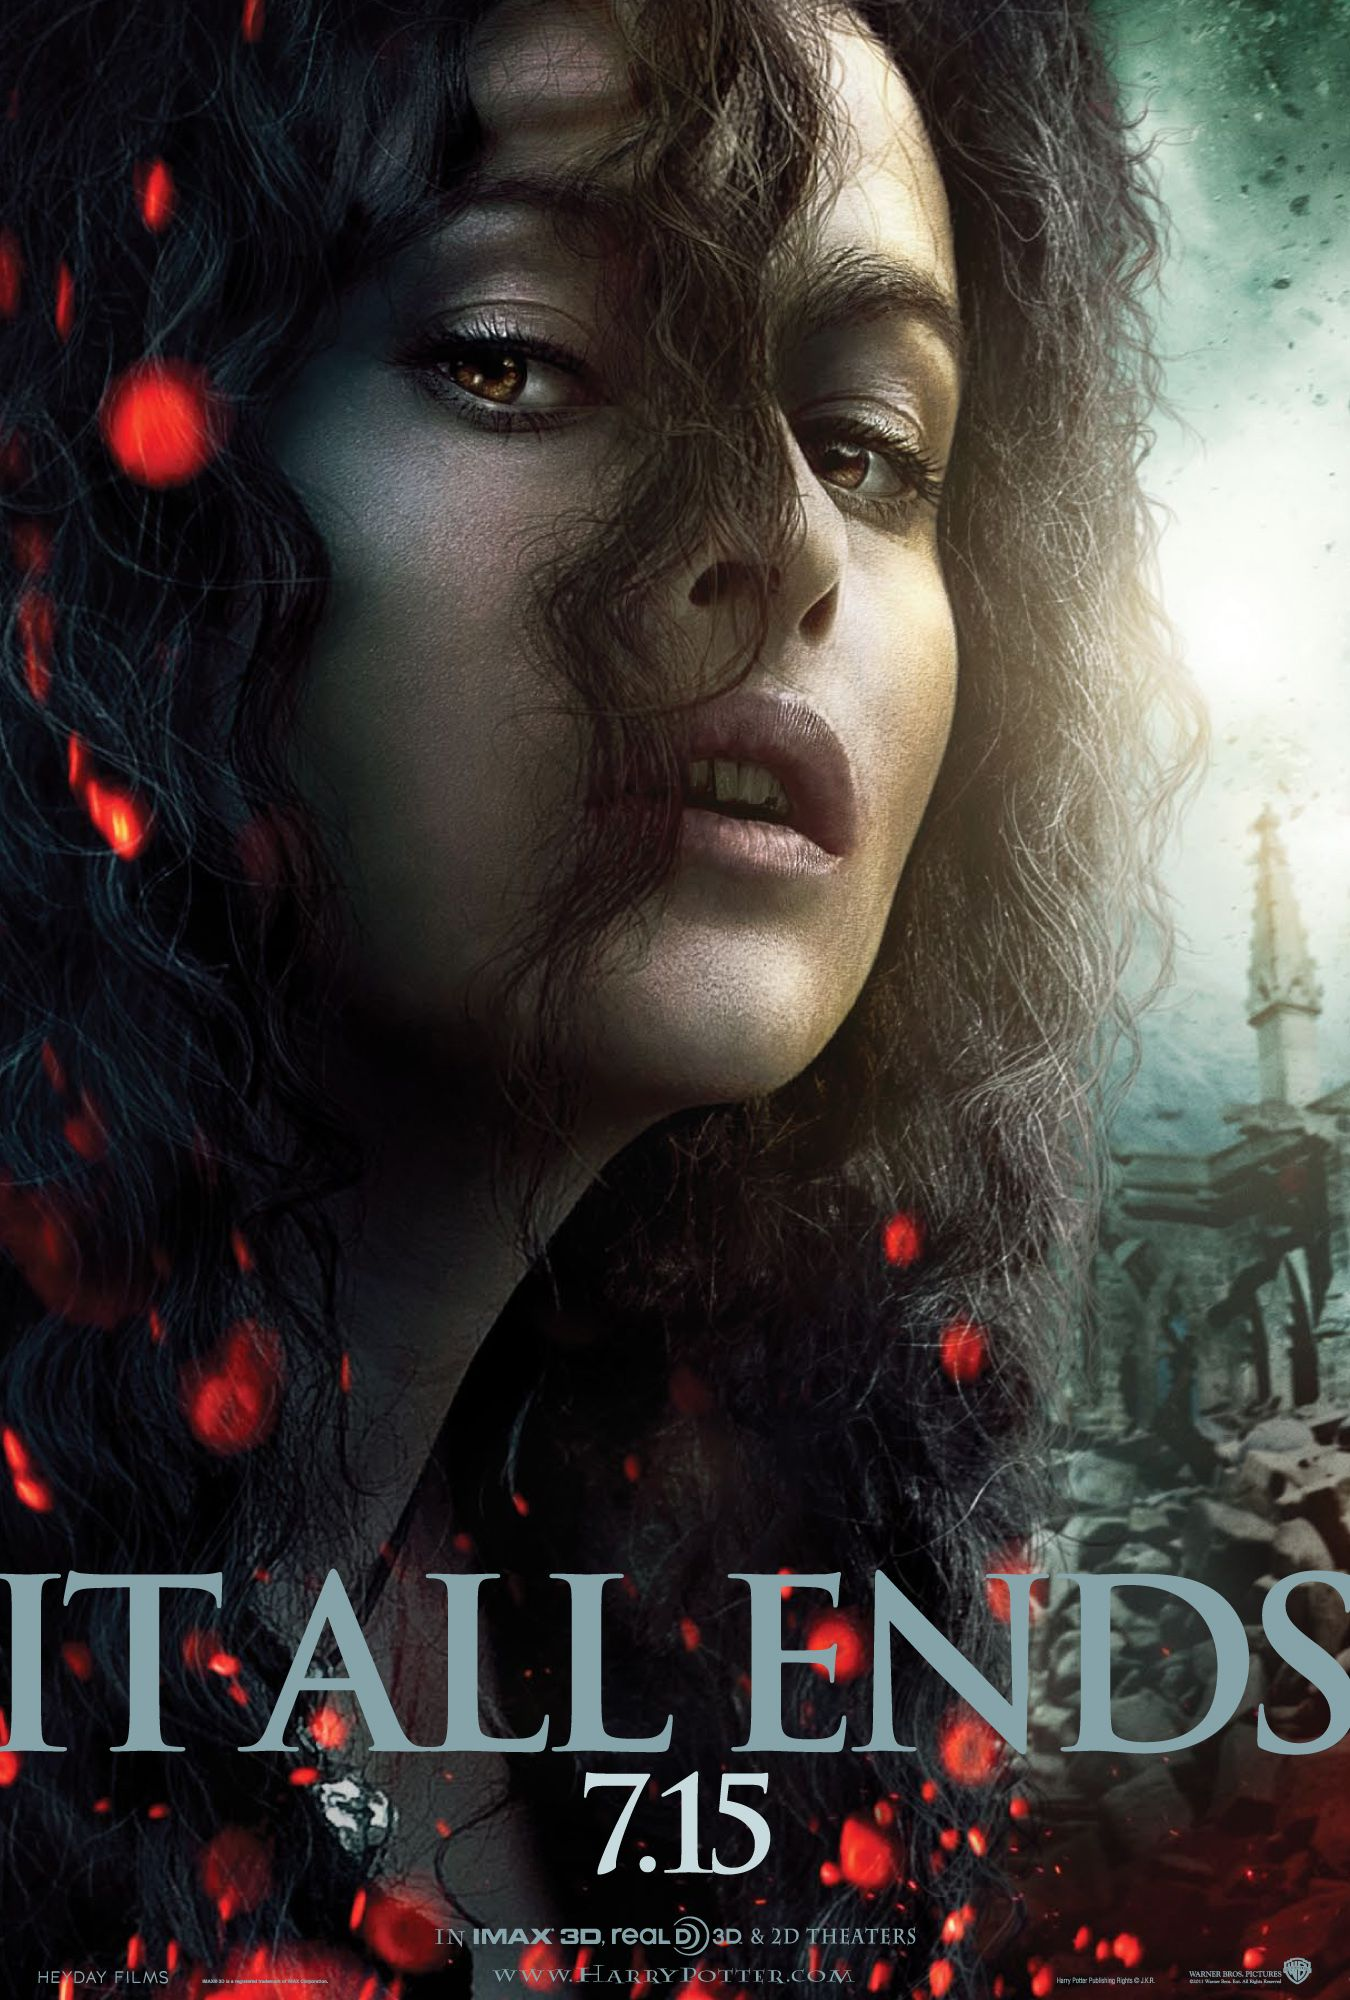 Bellatrix HARRY POTTER AND THE DEATHLY HALLOWS - PART 2 ...